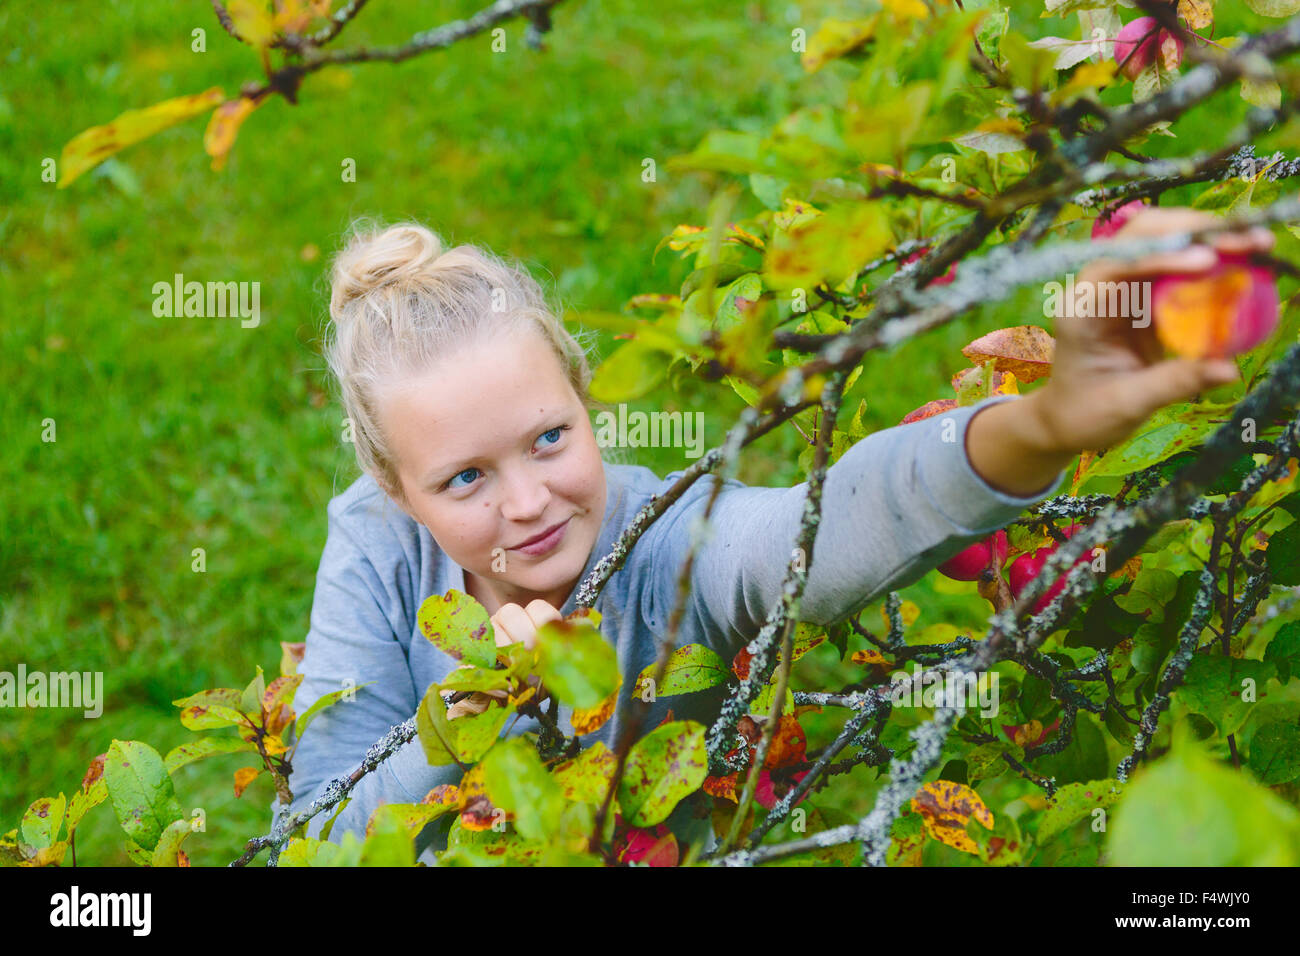 Finland, Uusimaa, Sipoo, Woman reaching for apple on branch - Stock Image